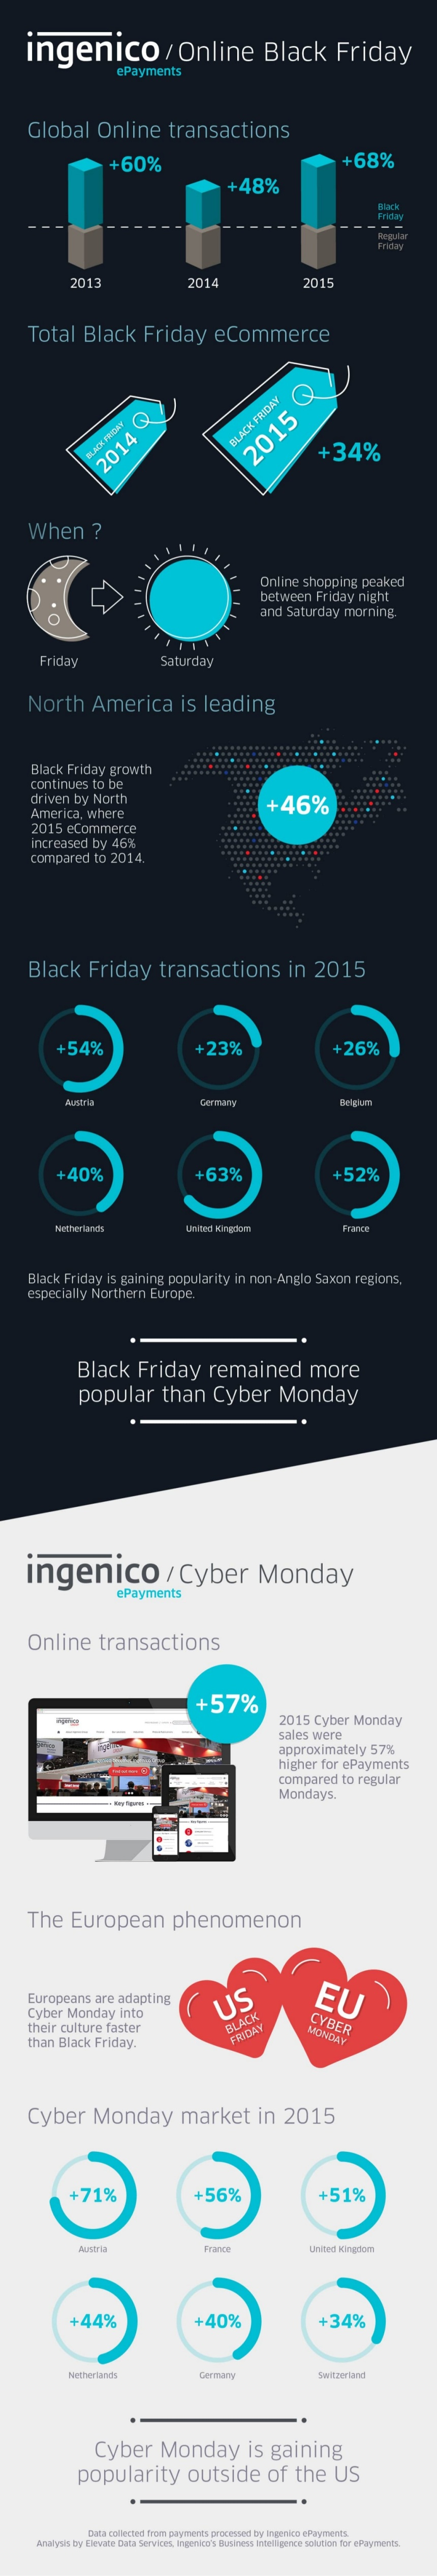 black-friday-y-cyber-monday-infografia